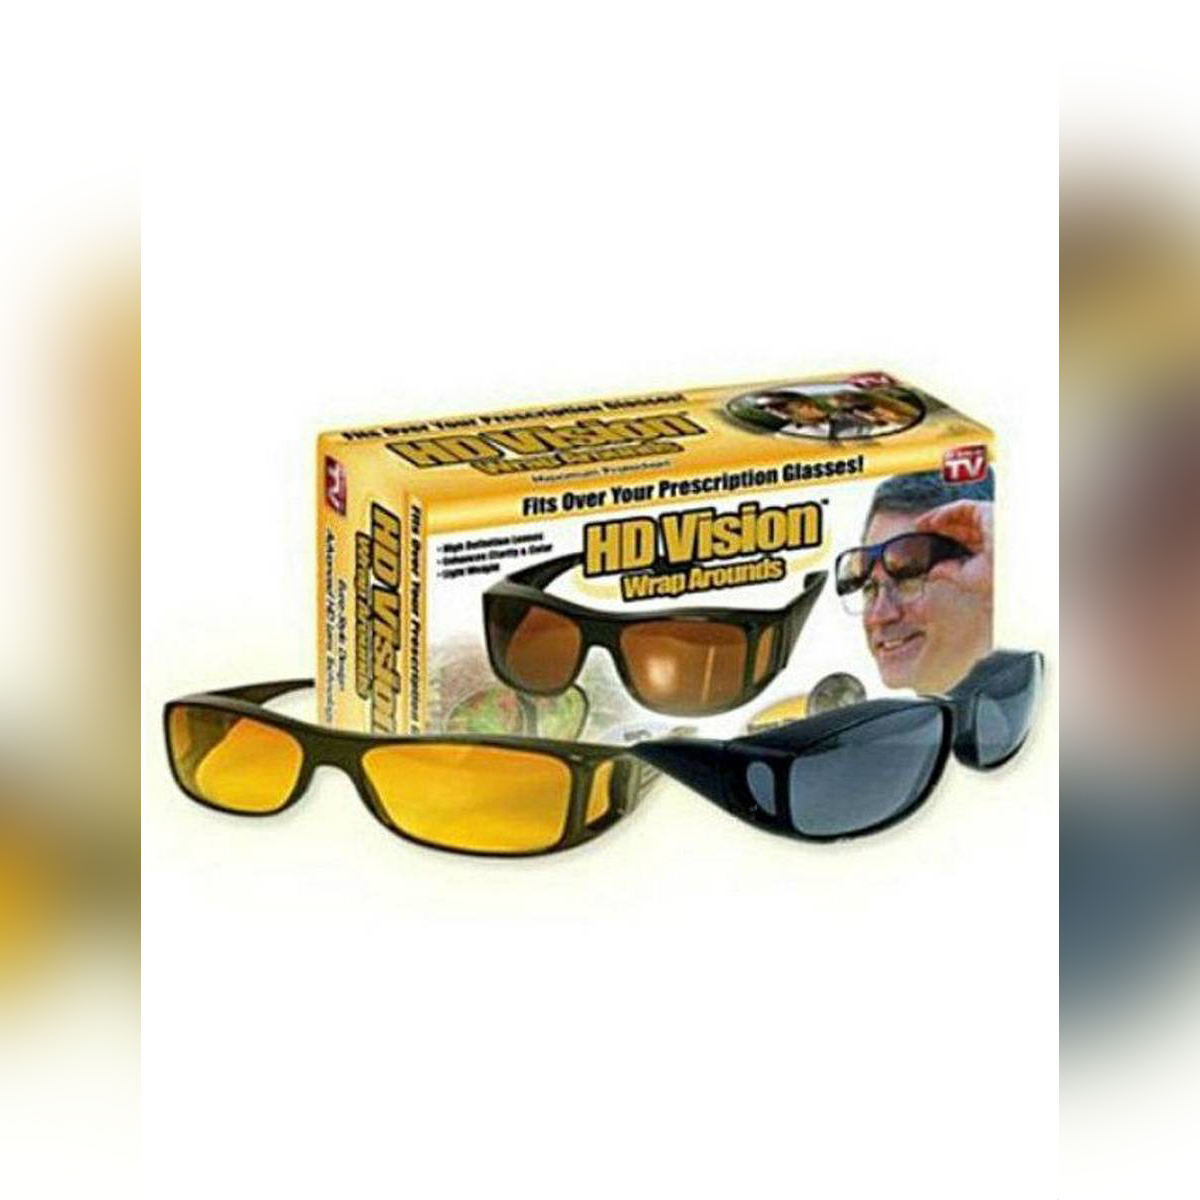 Pack of 2 - Night & Day HD Vision Glasses